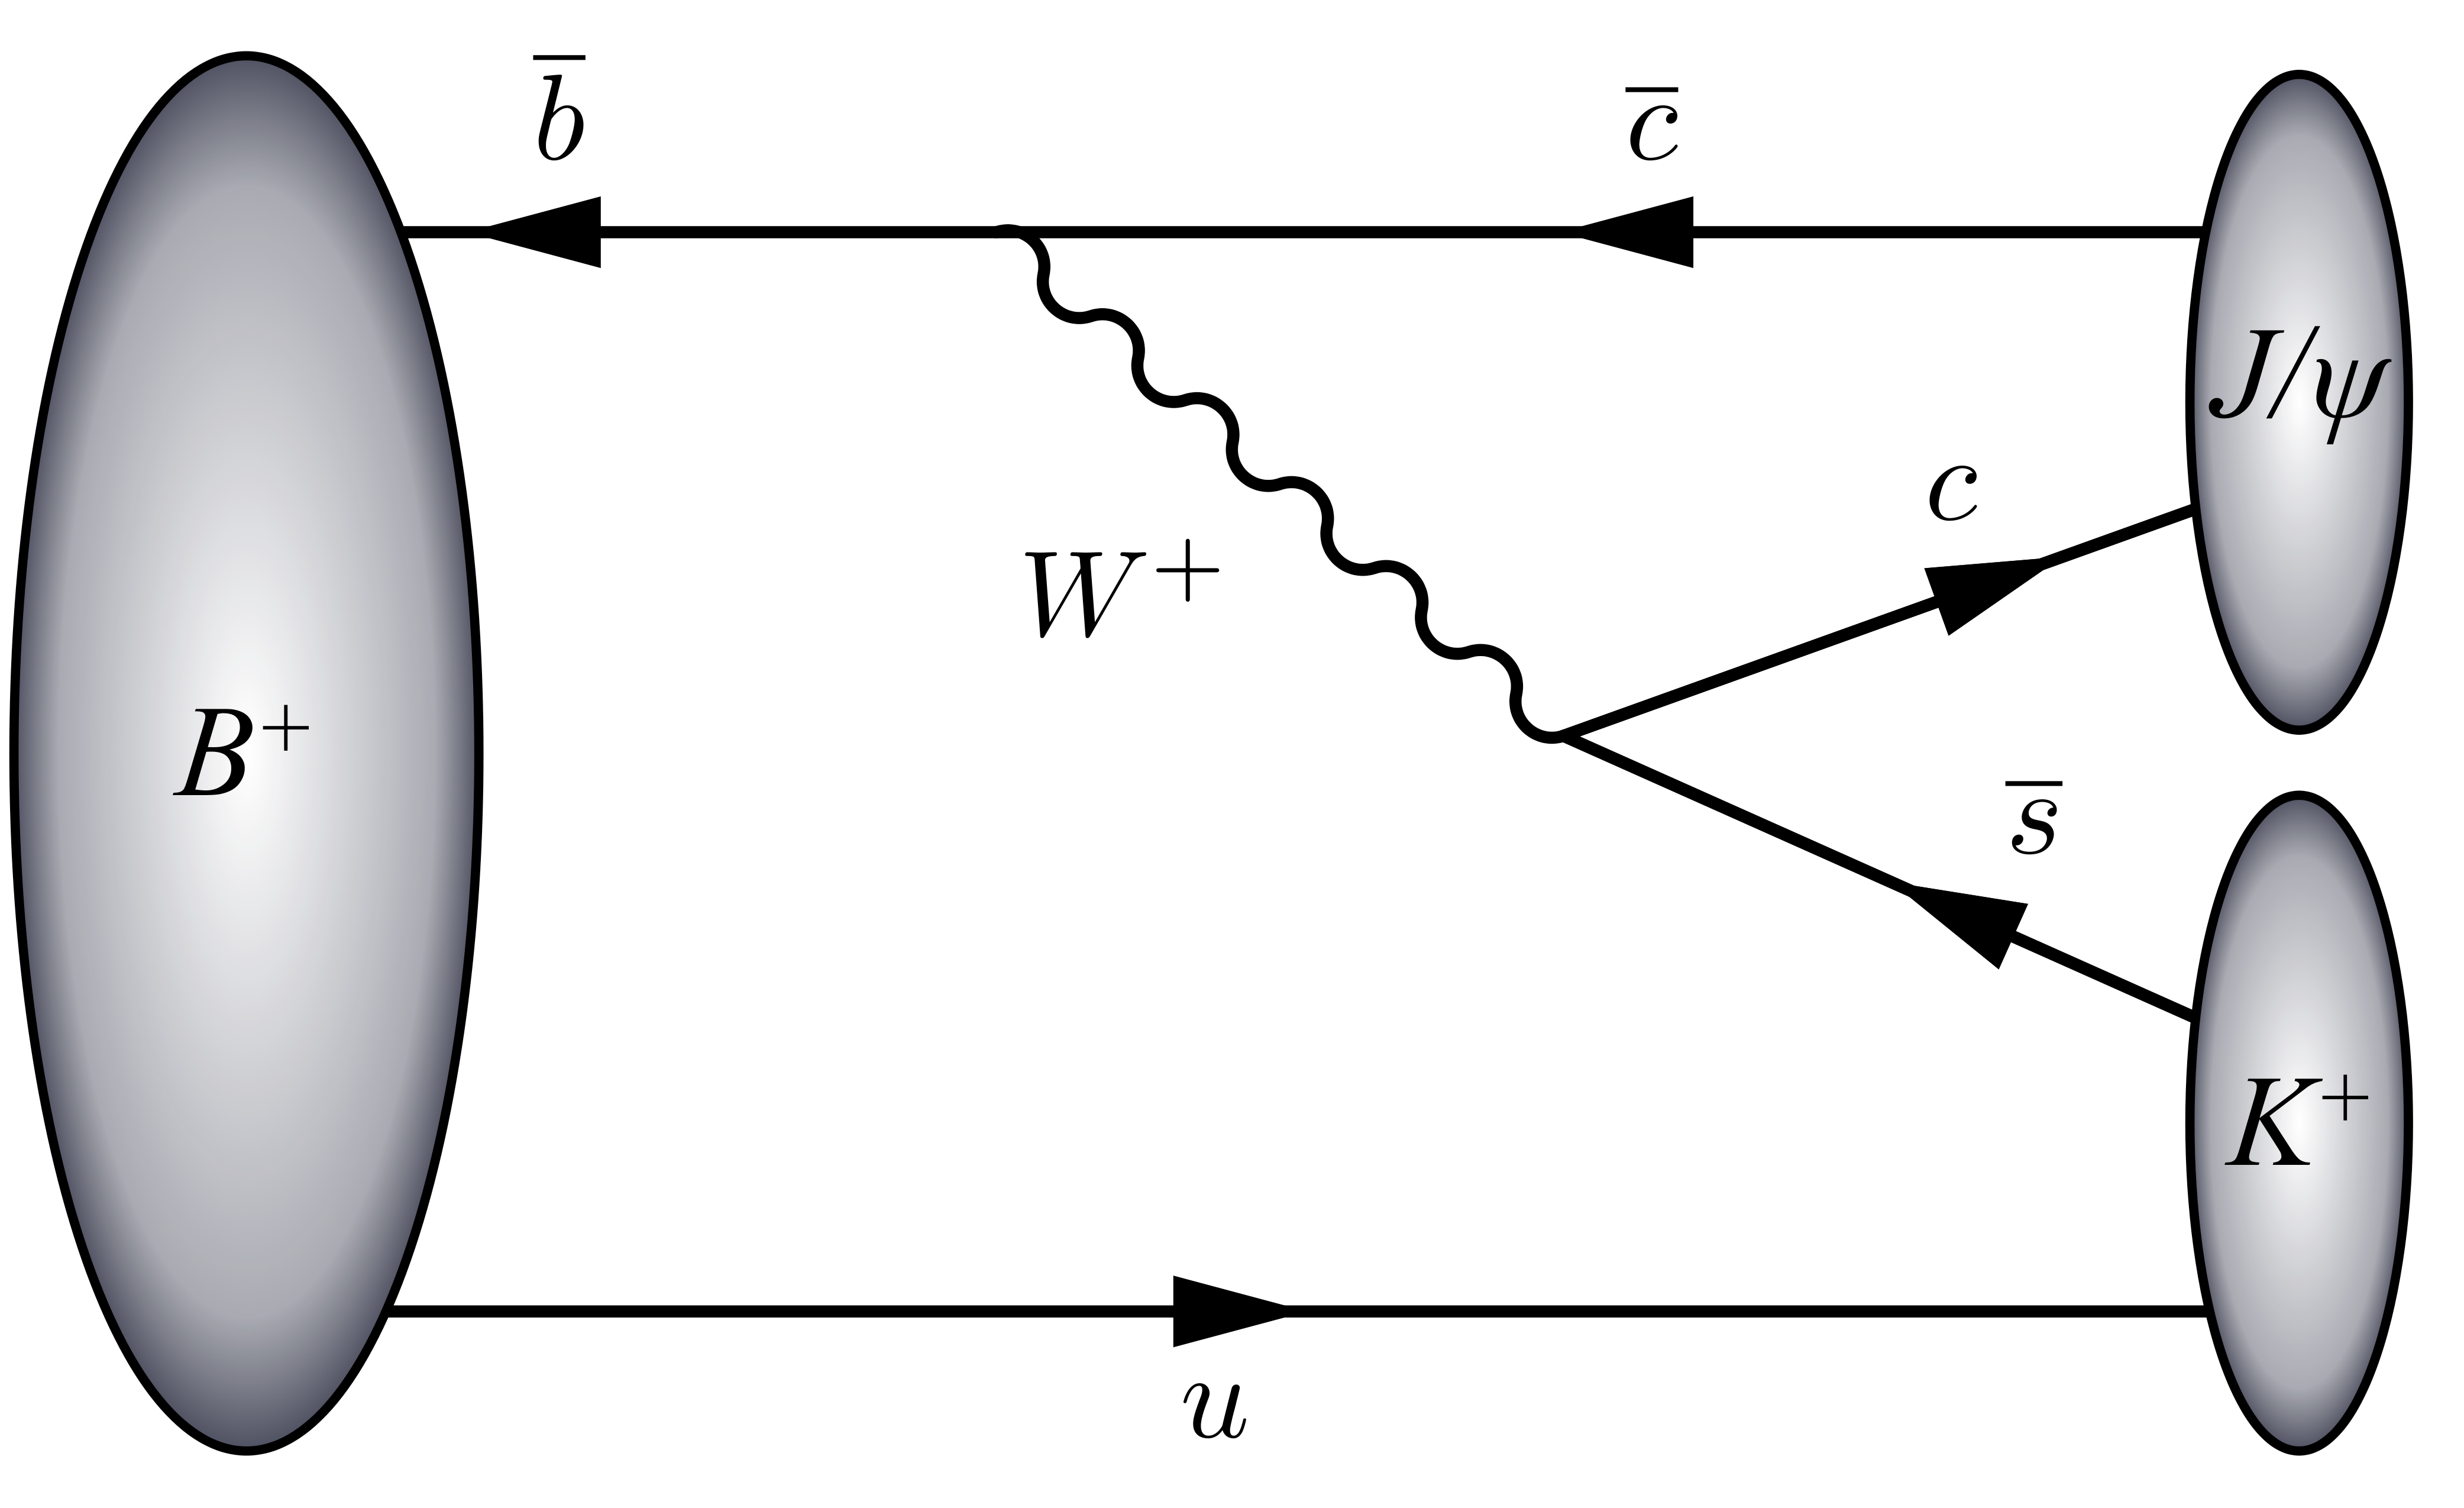 Chapter 1: Theoretical background 31 Figure 1.6: Leading-order diagram for the decay of a B + meson (ub ) to J/ψ (cc ) and K + (us ).